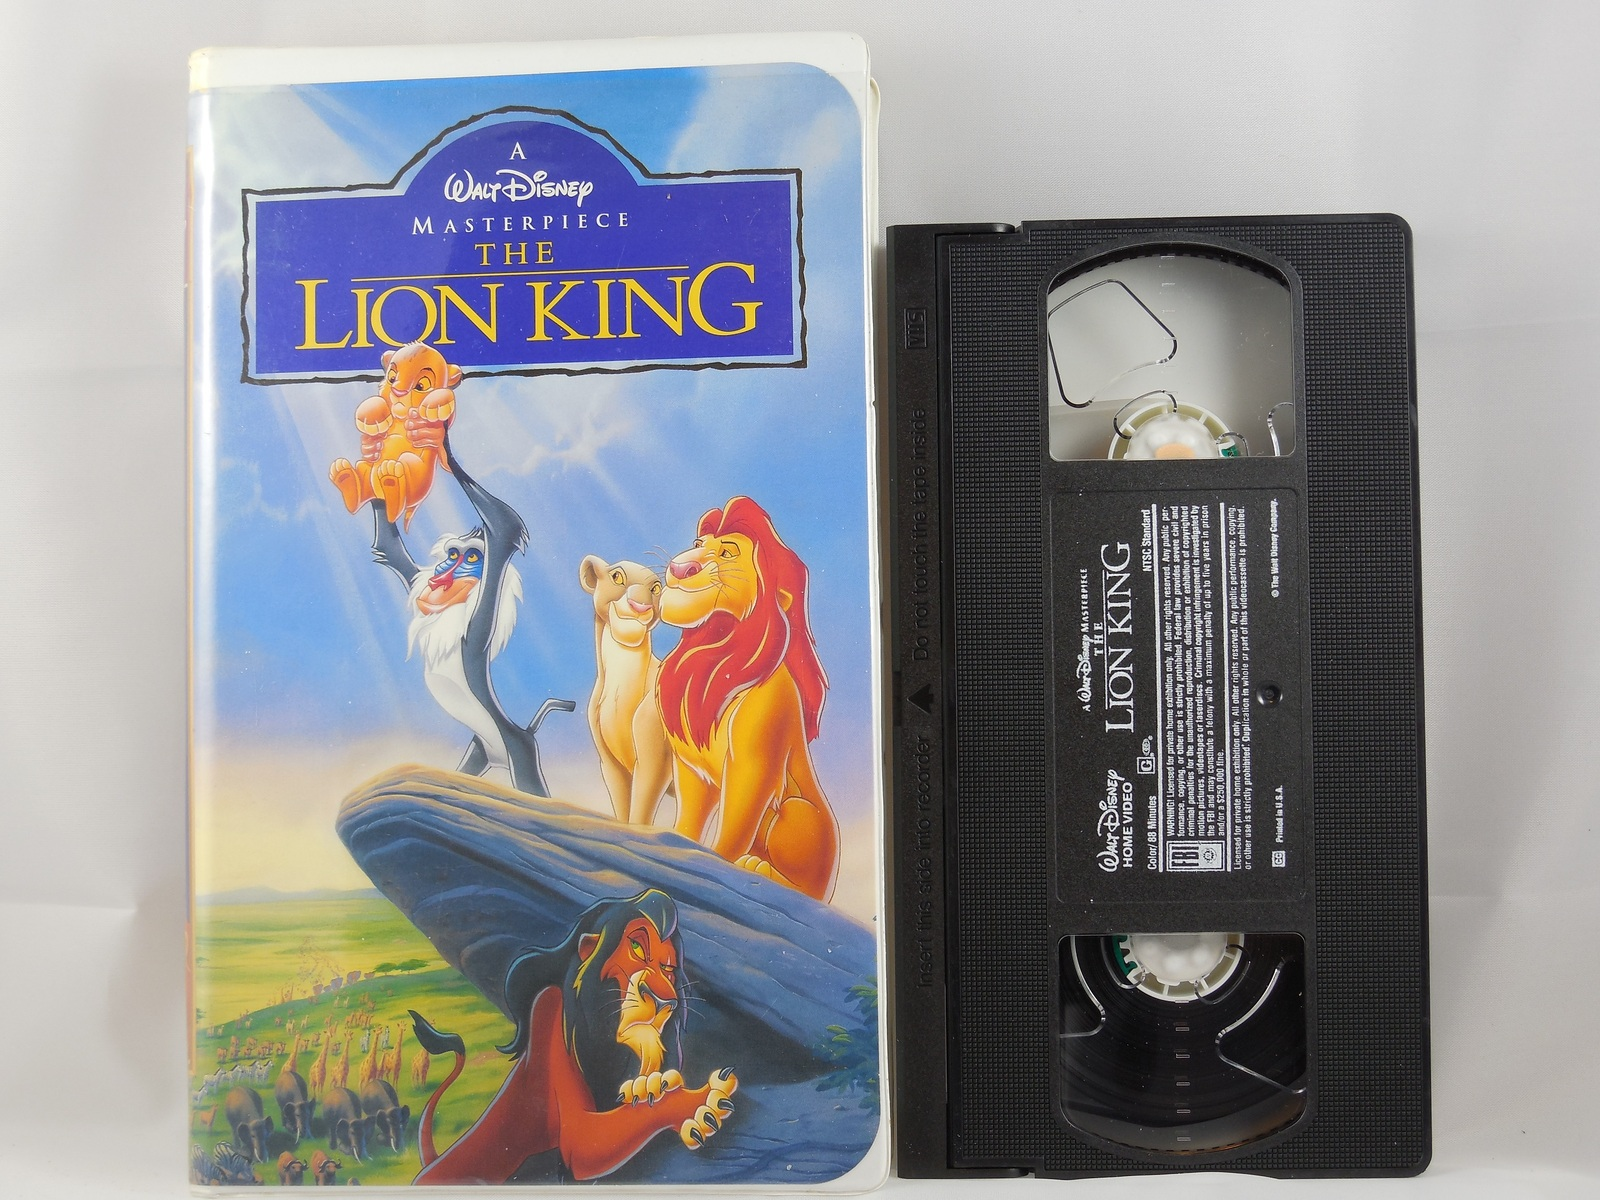 the lion king vhs 1994 disney animation